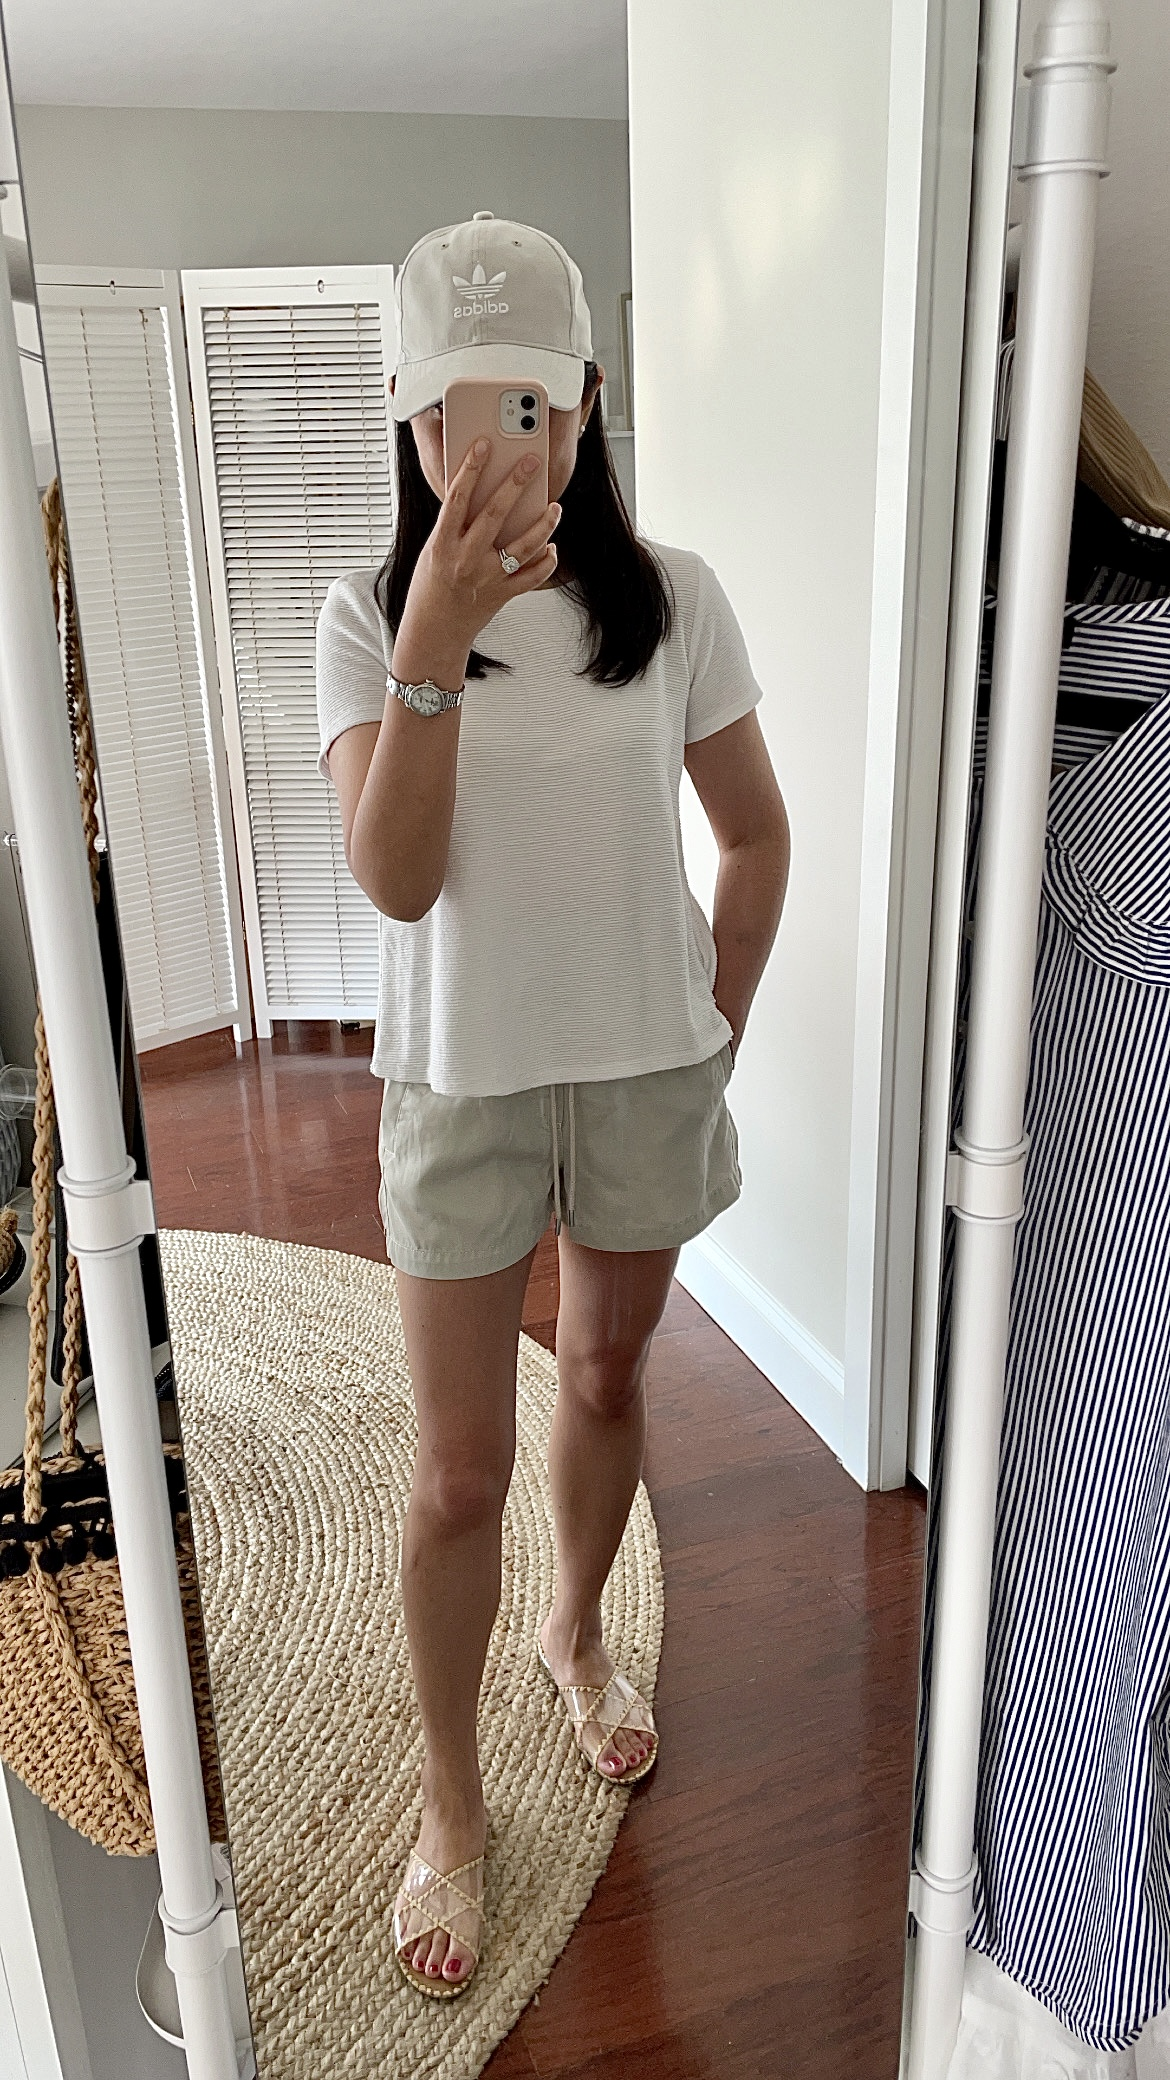 LOFT Pull On Shorts in Soft Twill, size XSP